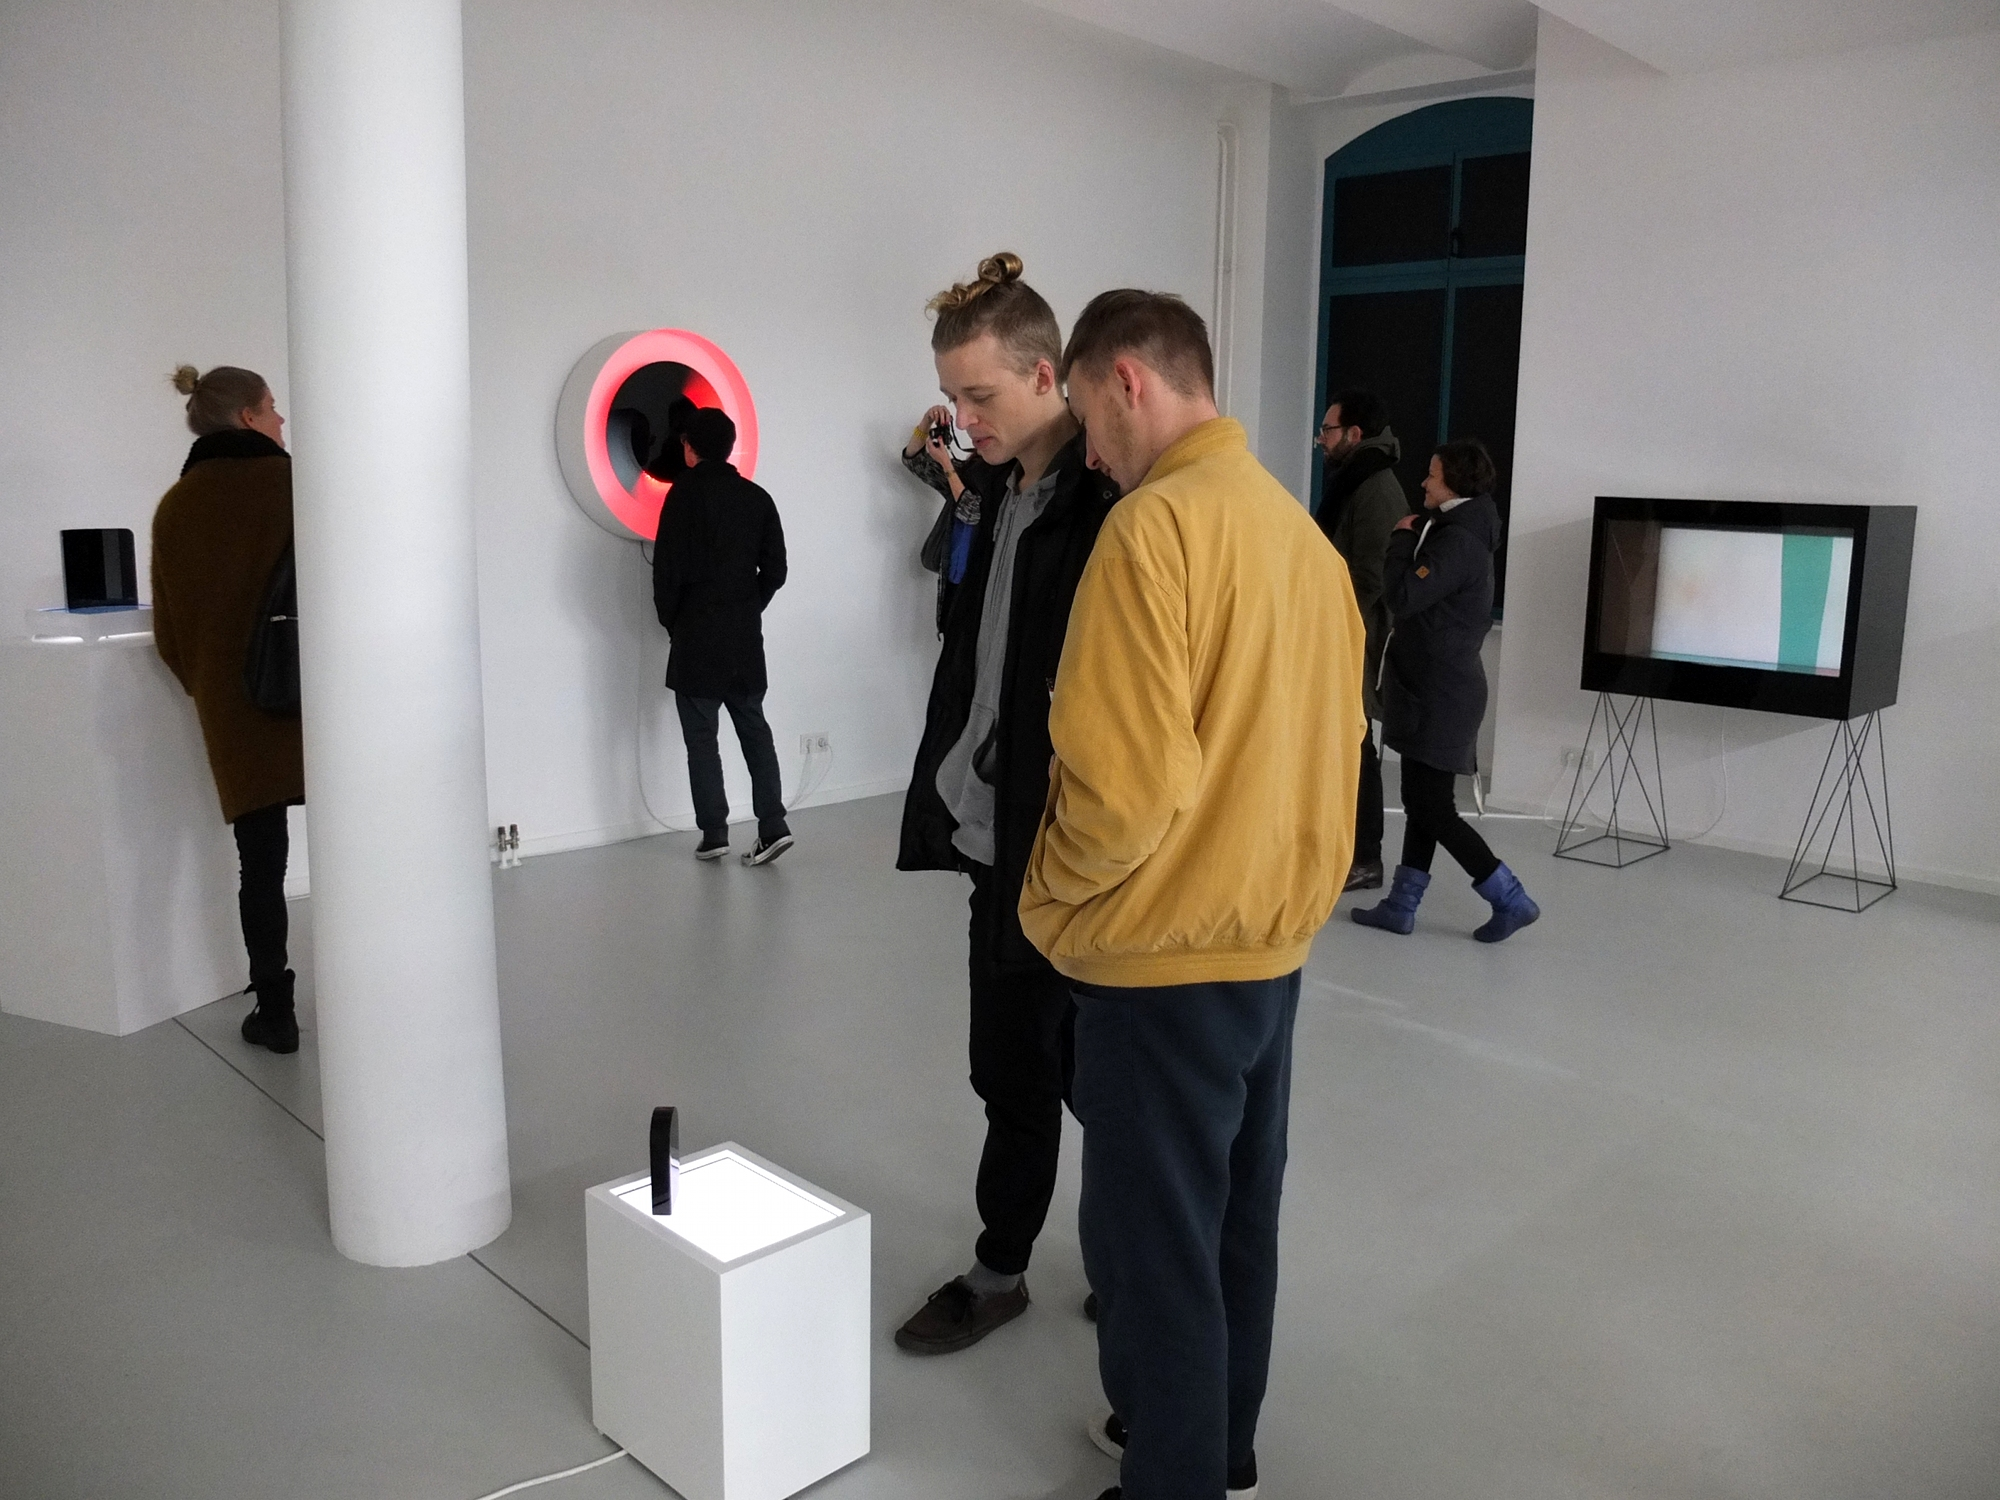 Kim Asendorf & Flavien Théry, Preview, 2014